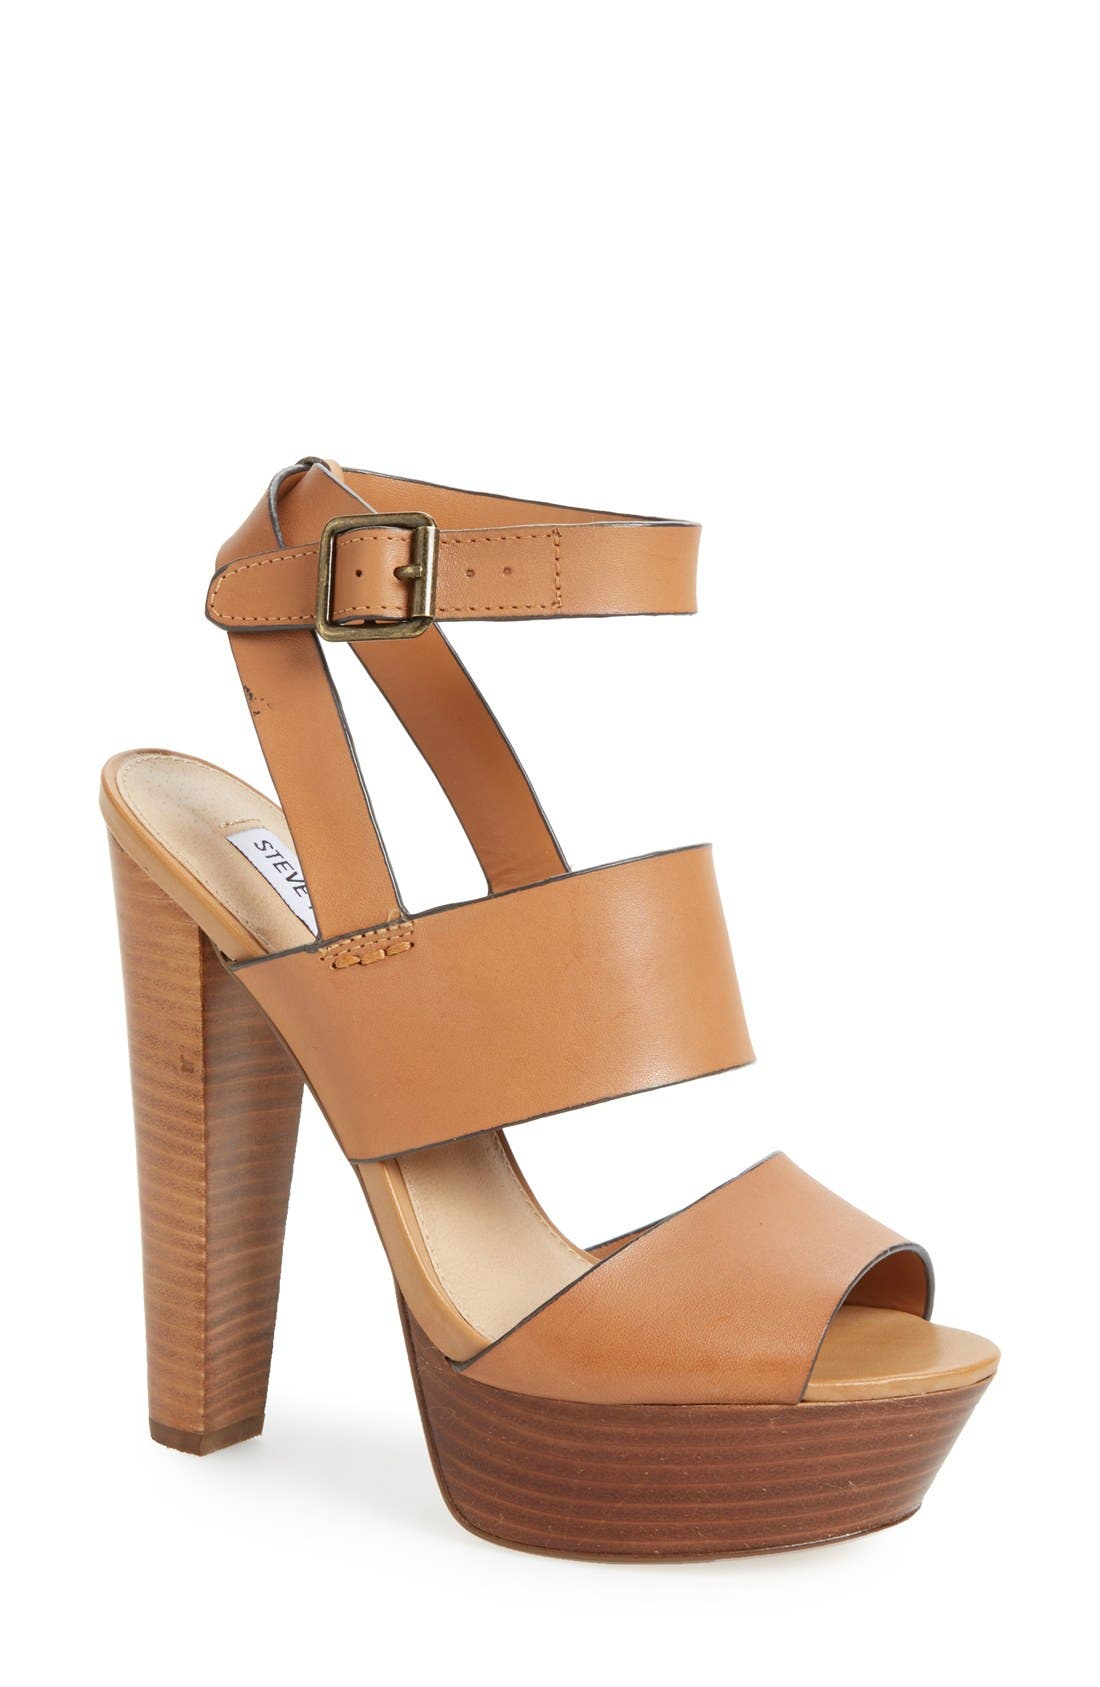 Main Image - Steve Madden 'Dezzzy' Leather Ankle Strap Sandal (Women)